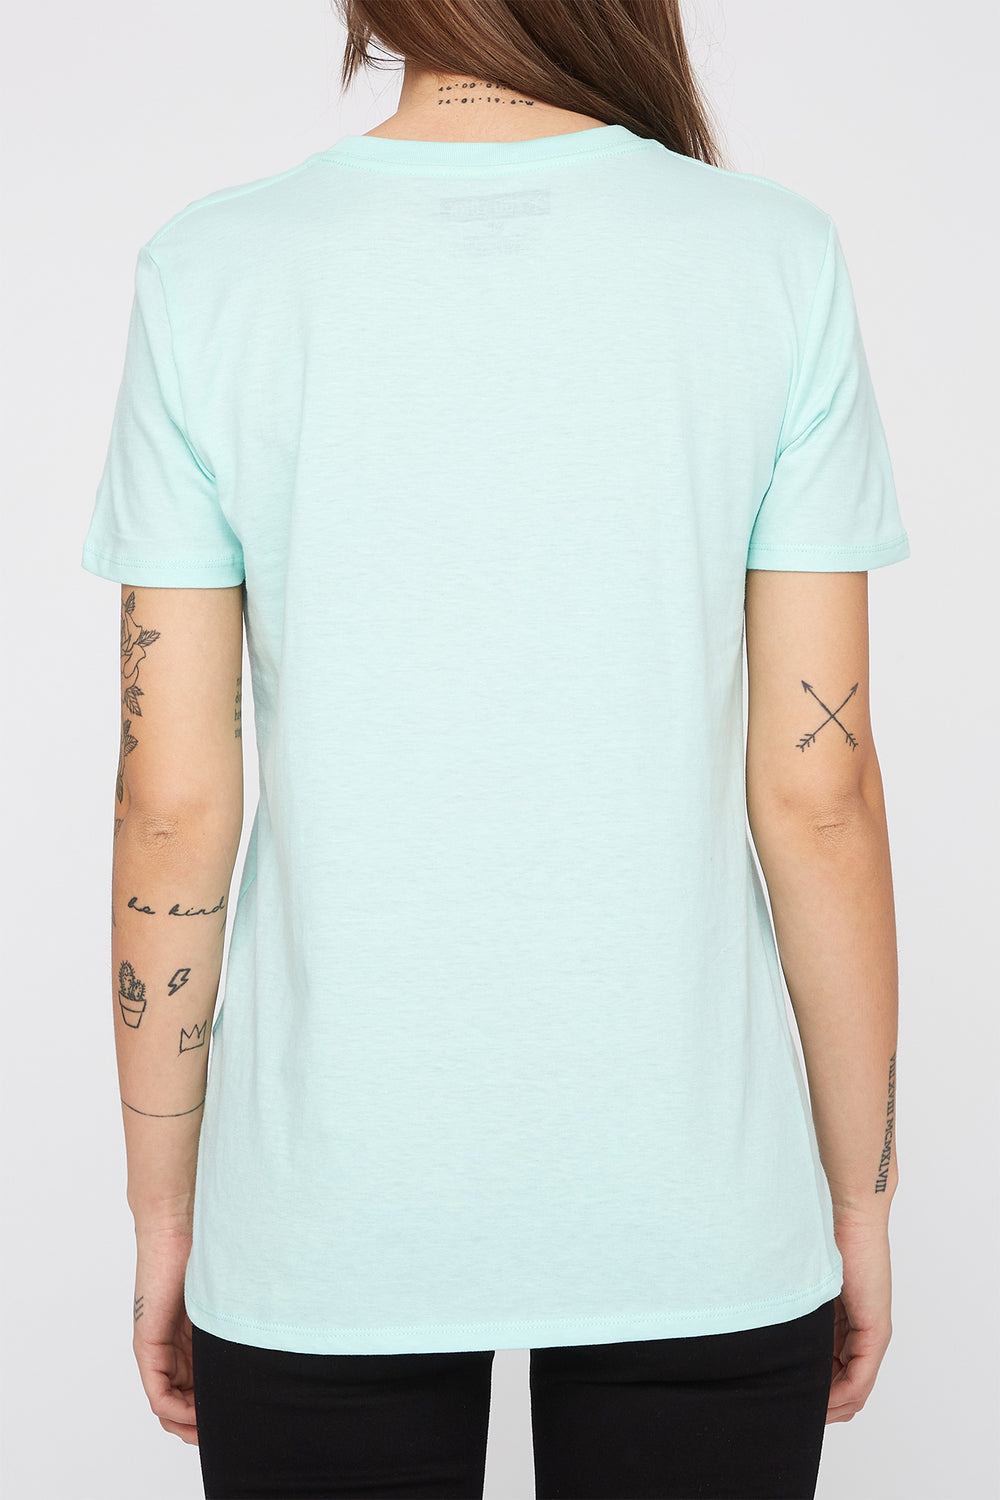 Zoo York Womens Pastel Box Logo T-Shirt Sage